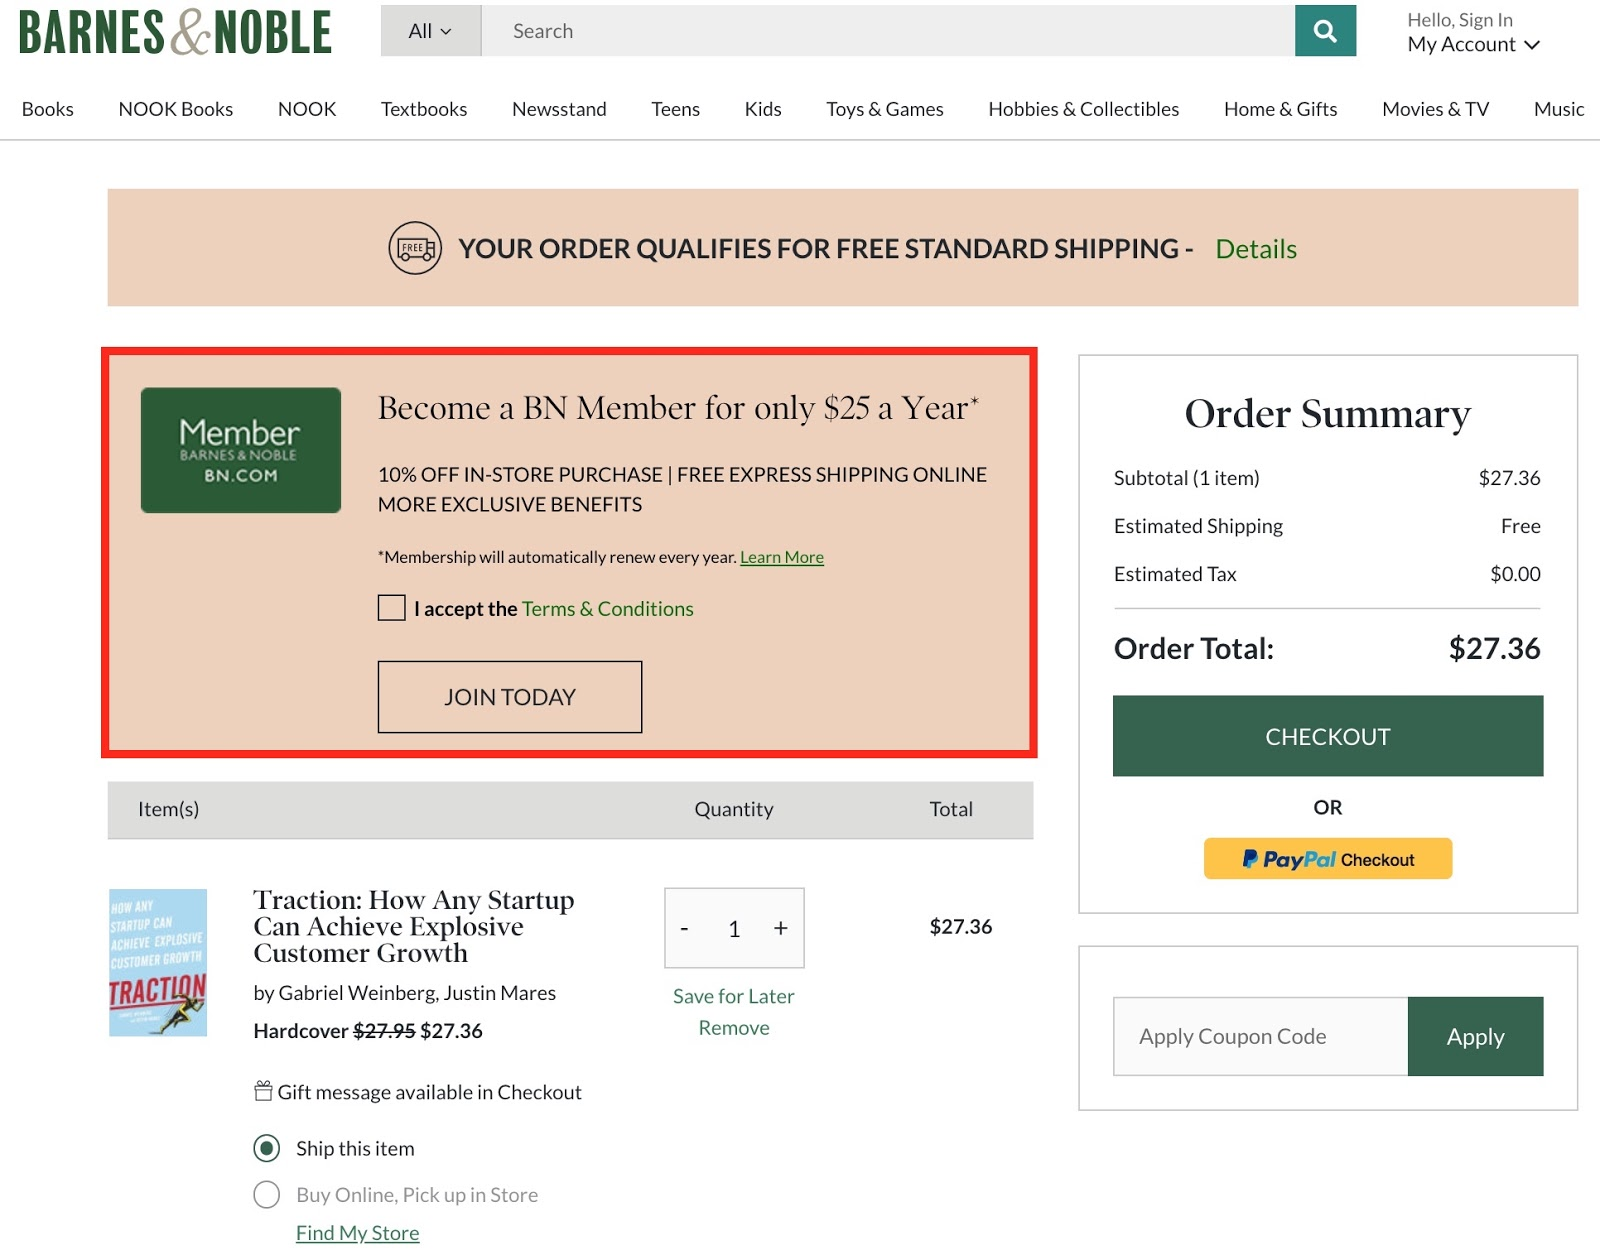 Screenshot showing the checkout page on Barnes & Noble